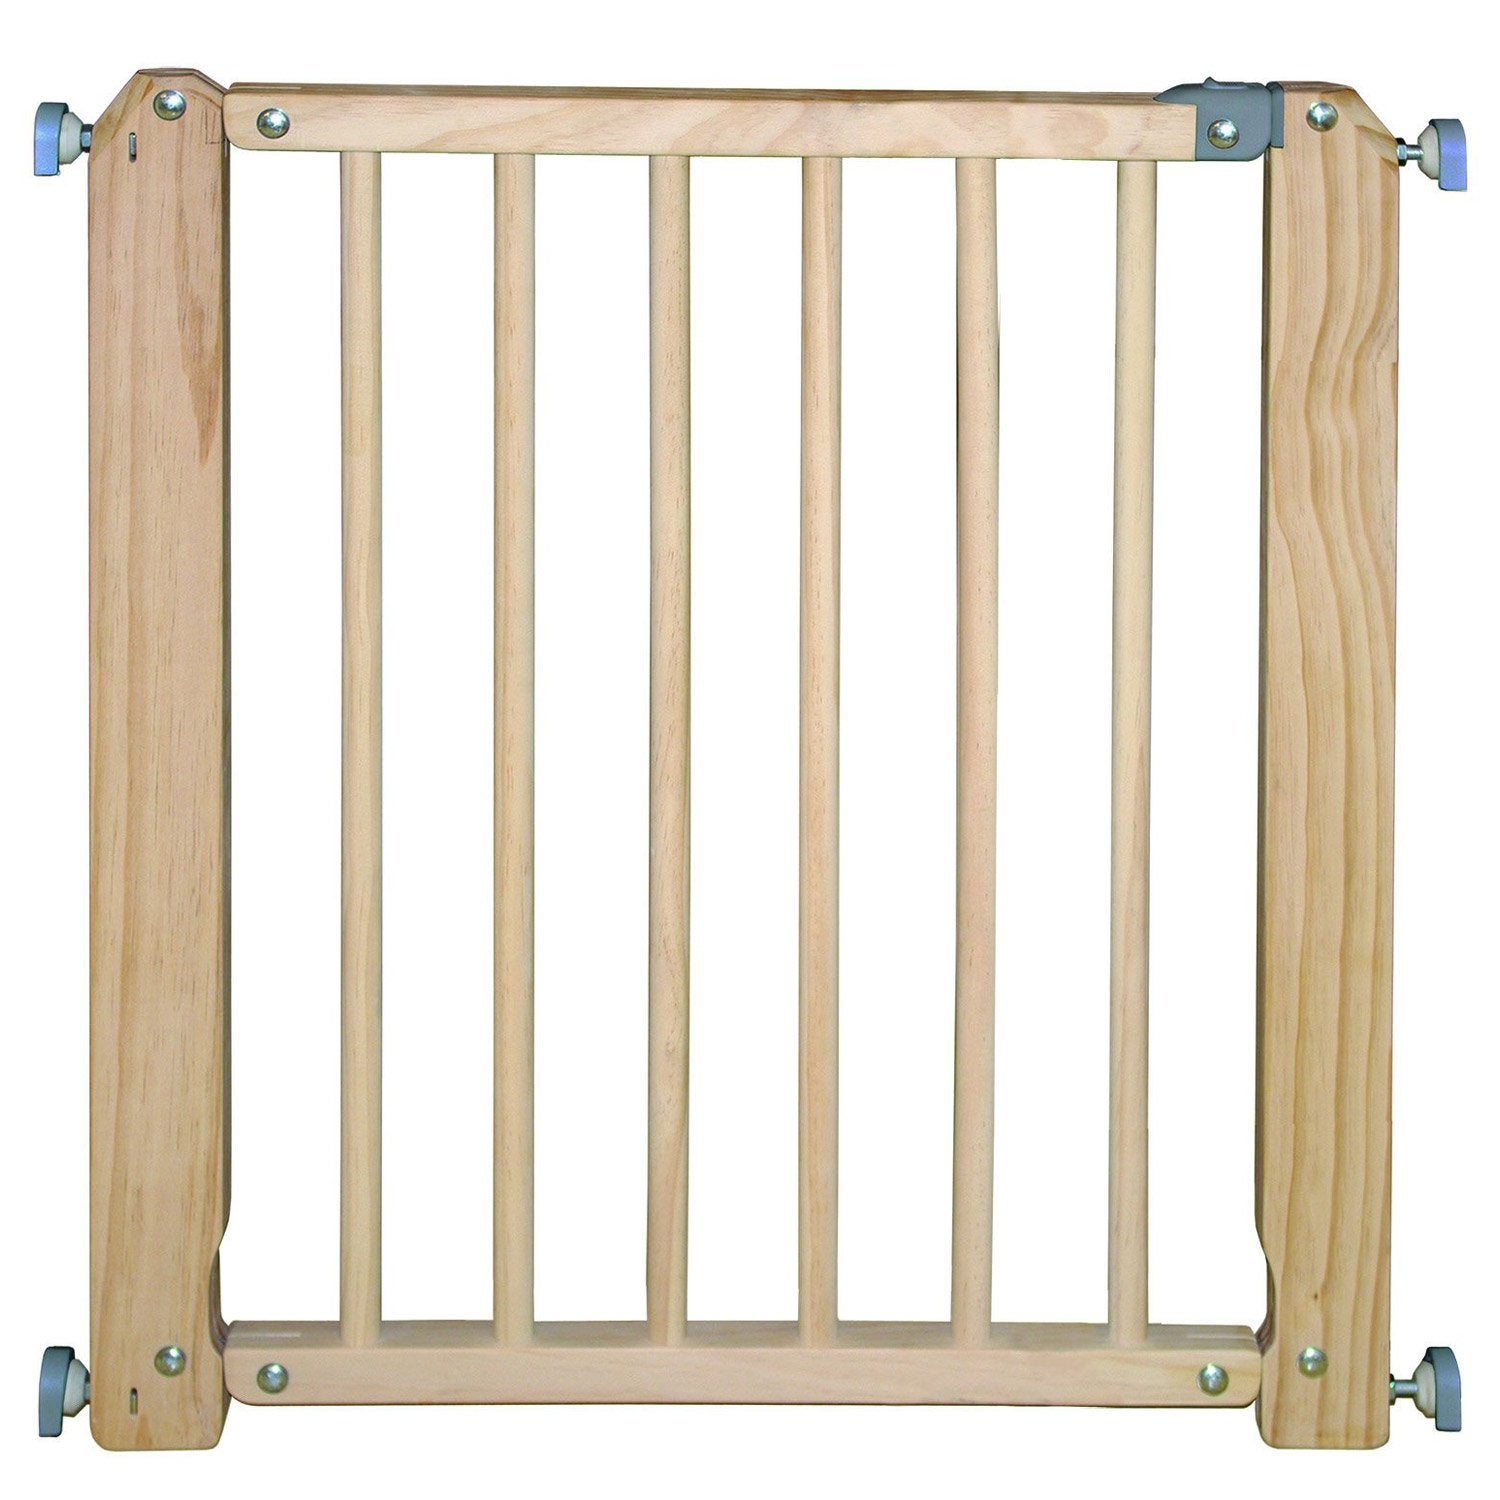 Barri re de s curit enfant en bois naturel long min max for Barriere exterieur en bois